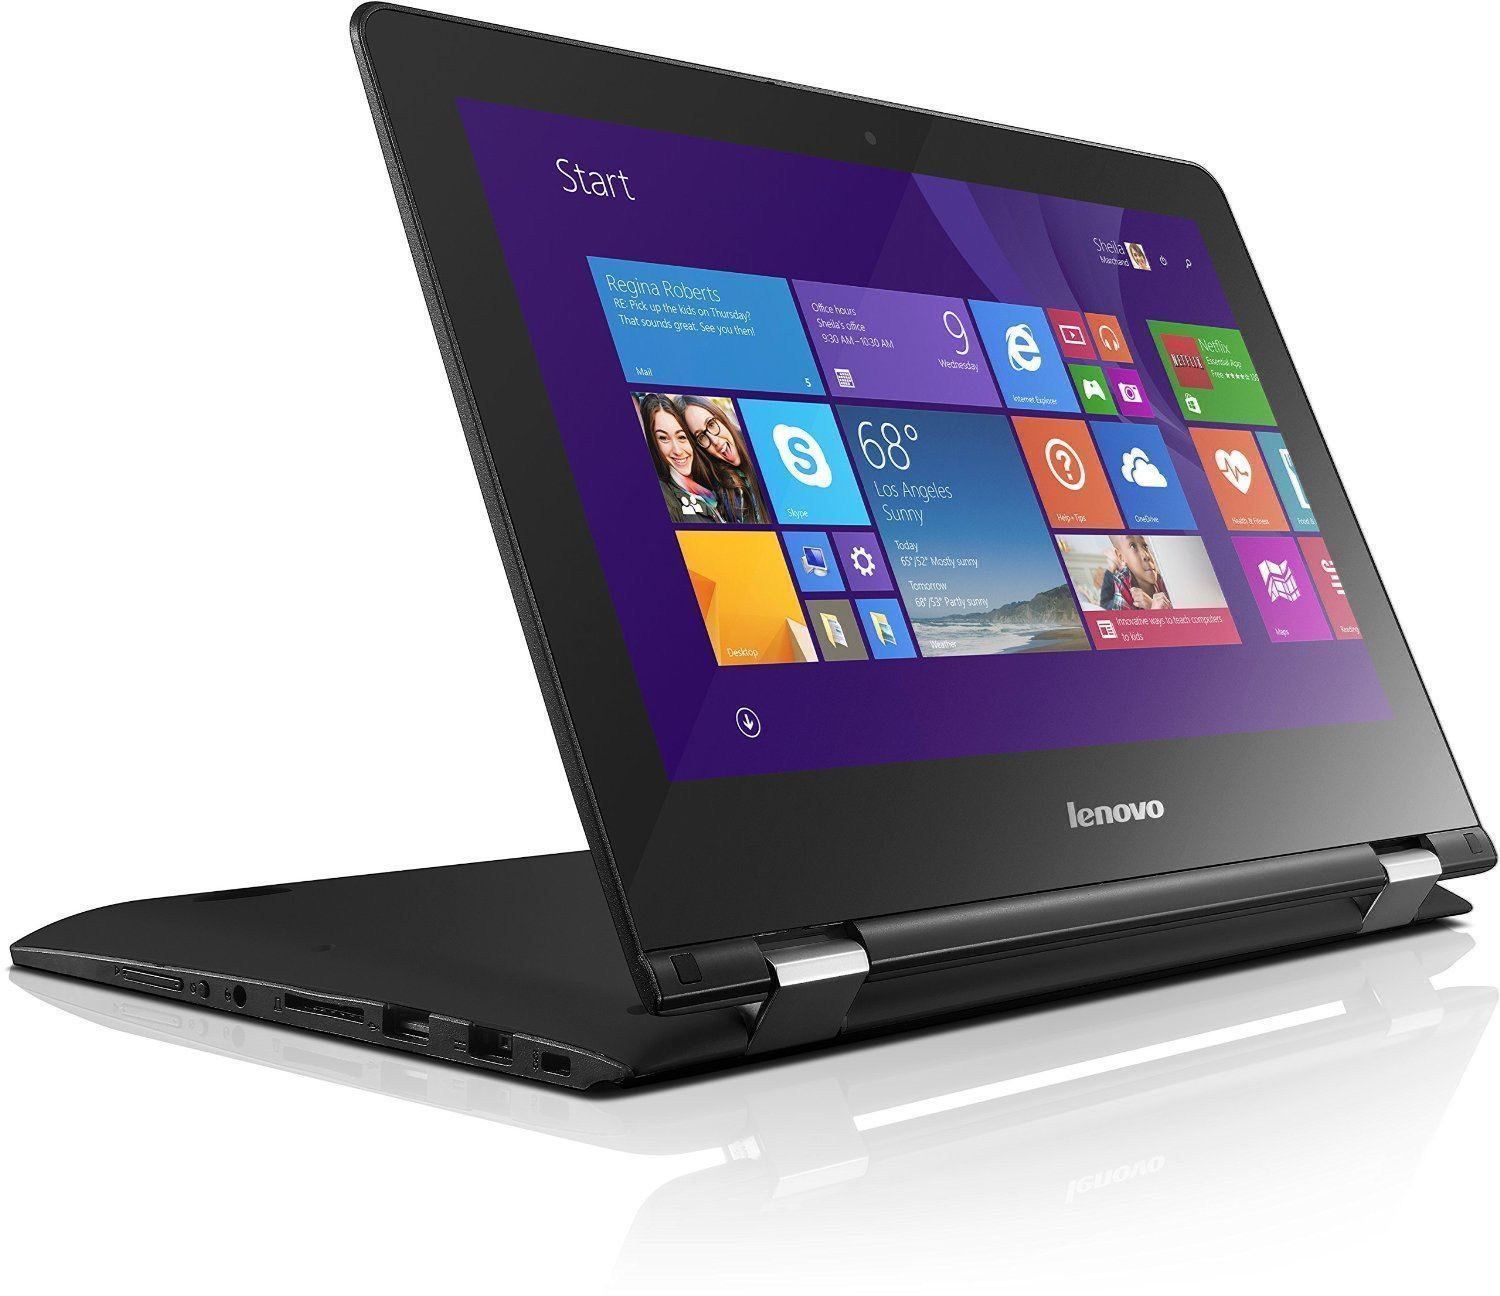 Download Driver Lenovo Yoga 500 32bit 64bit windows7 windows8